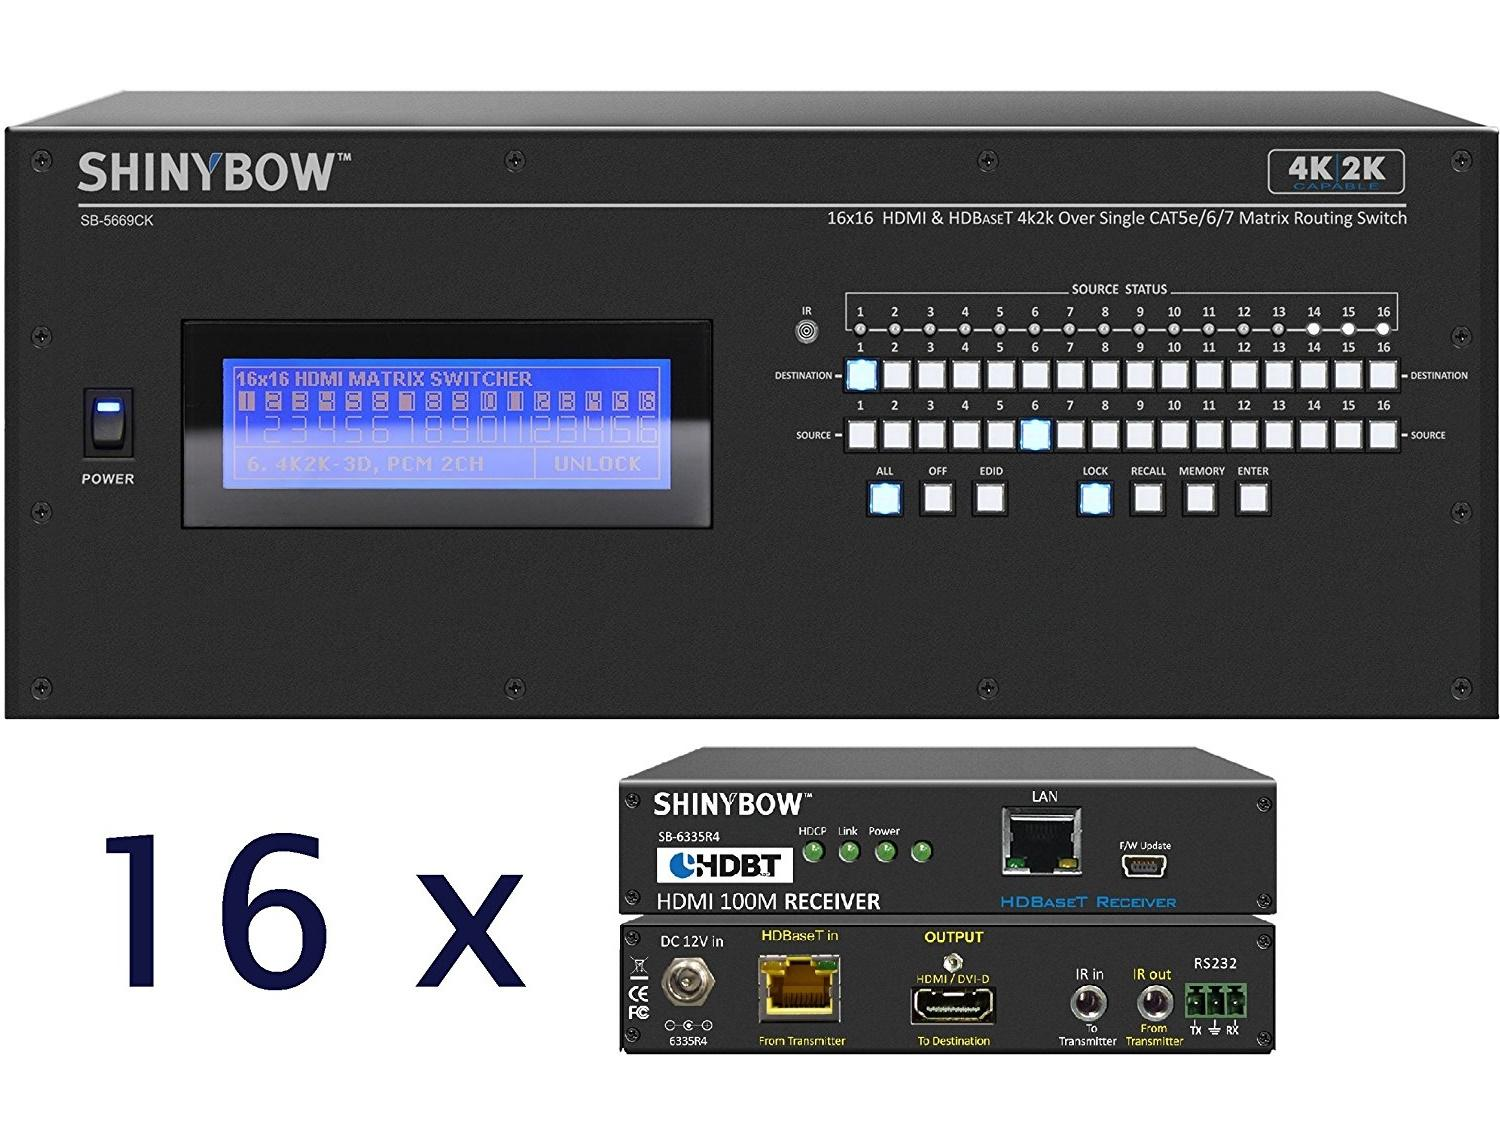 Shinybow SB-5669CK-16x35R4-Kit 16x16 4K UHD HDBaseT Matrix Switcher Kit/1 x SB-5669CK Switch/16 x SB-6335R4 Receivers